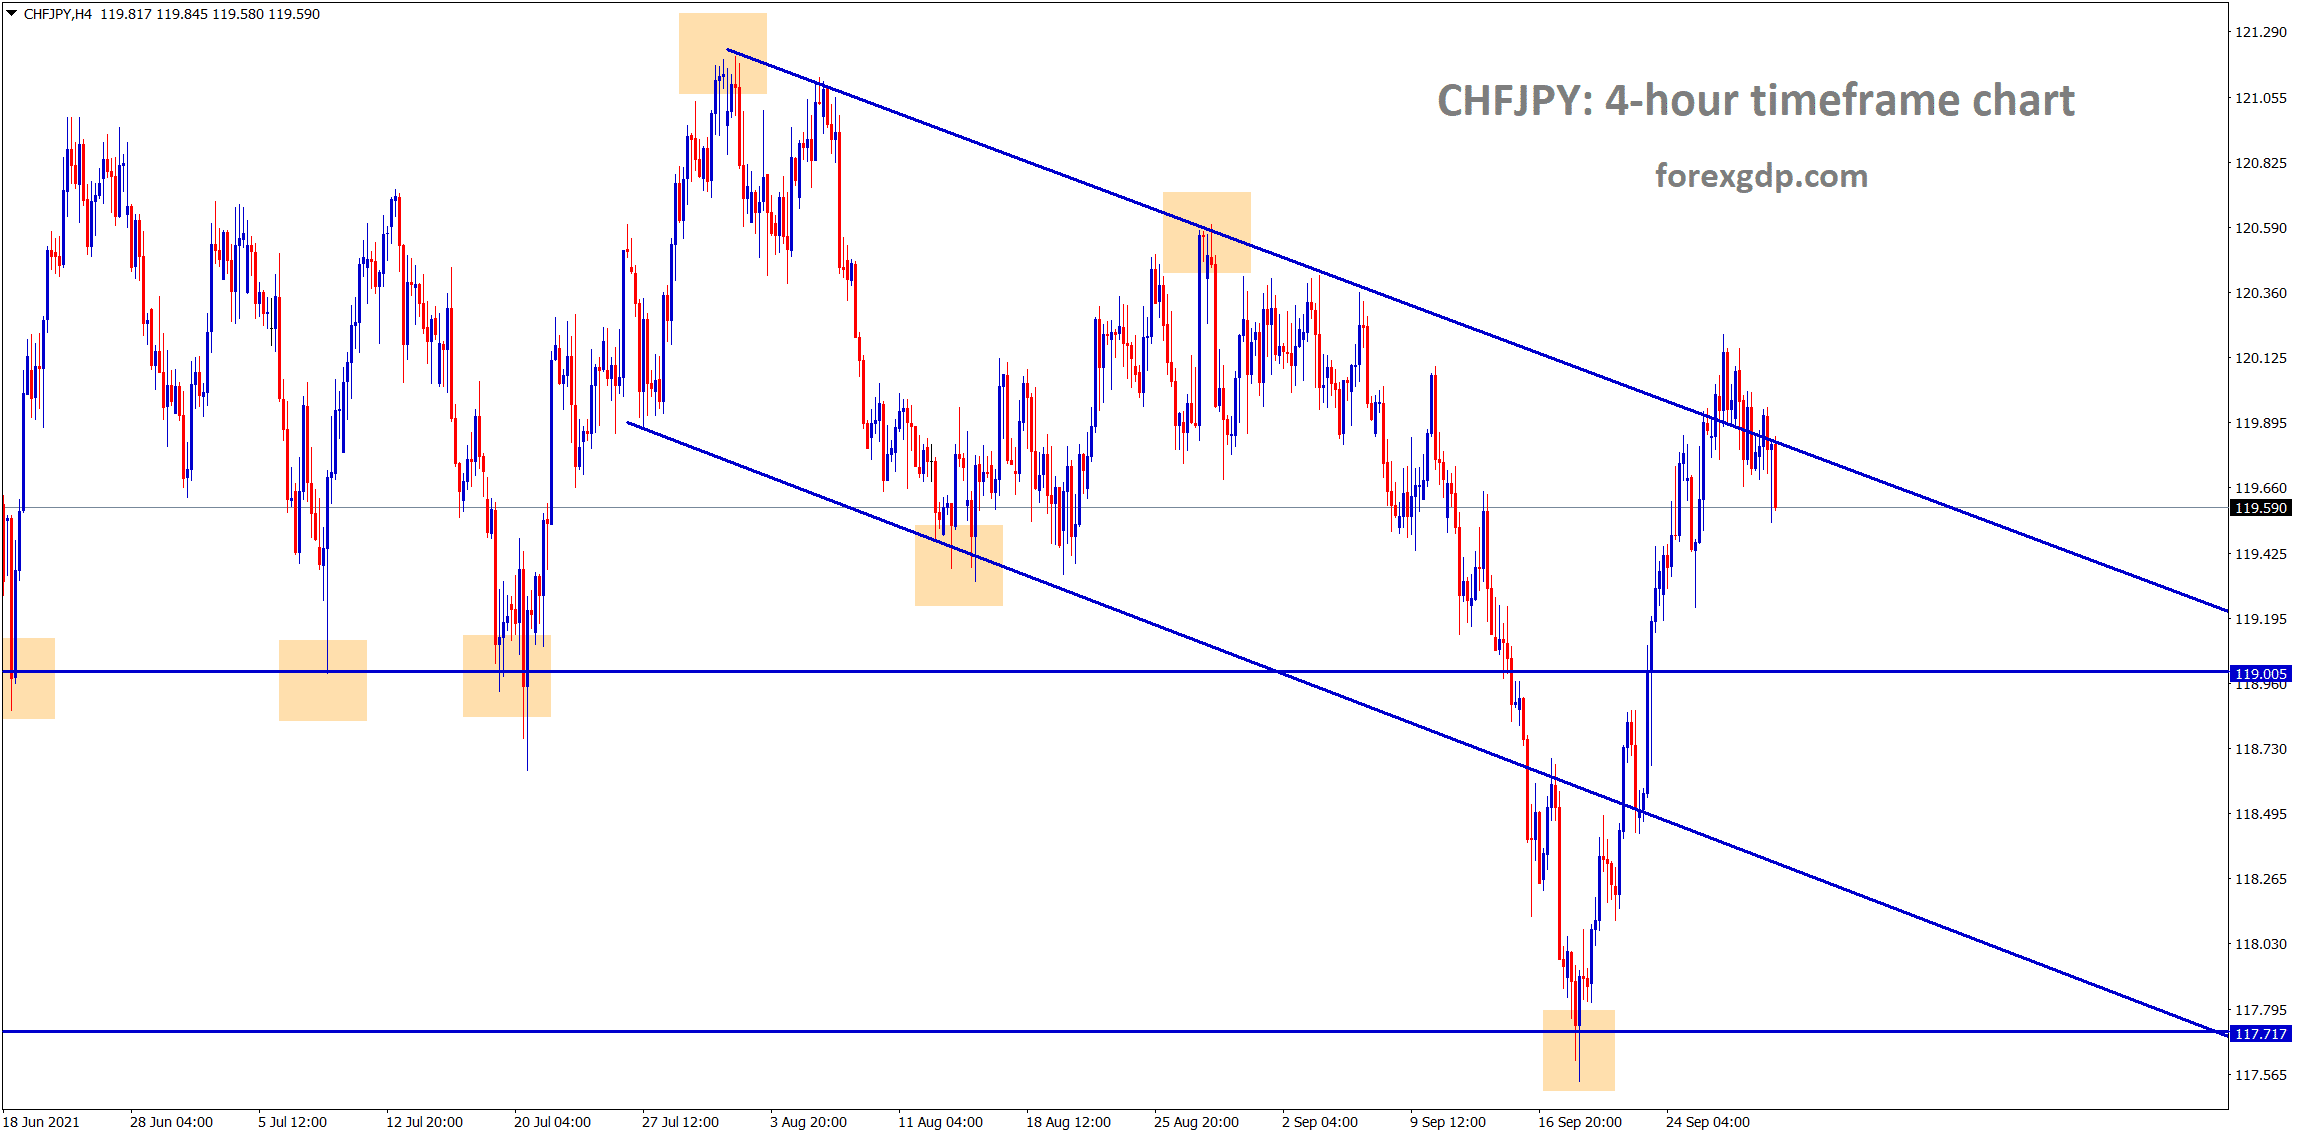 CHFJPY is trying to fall from the lower high area of the downtrend line